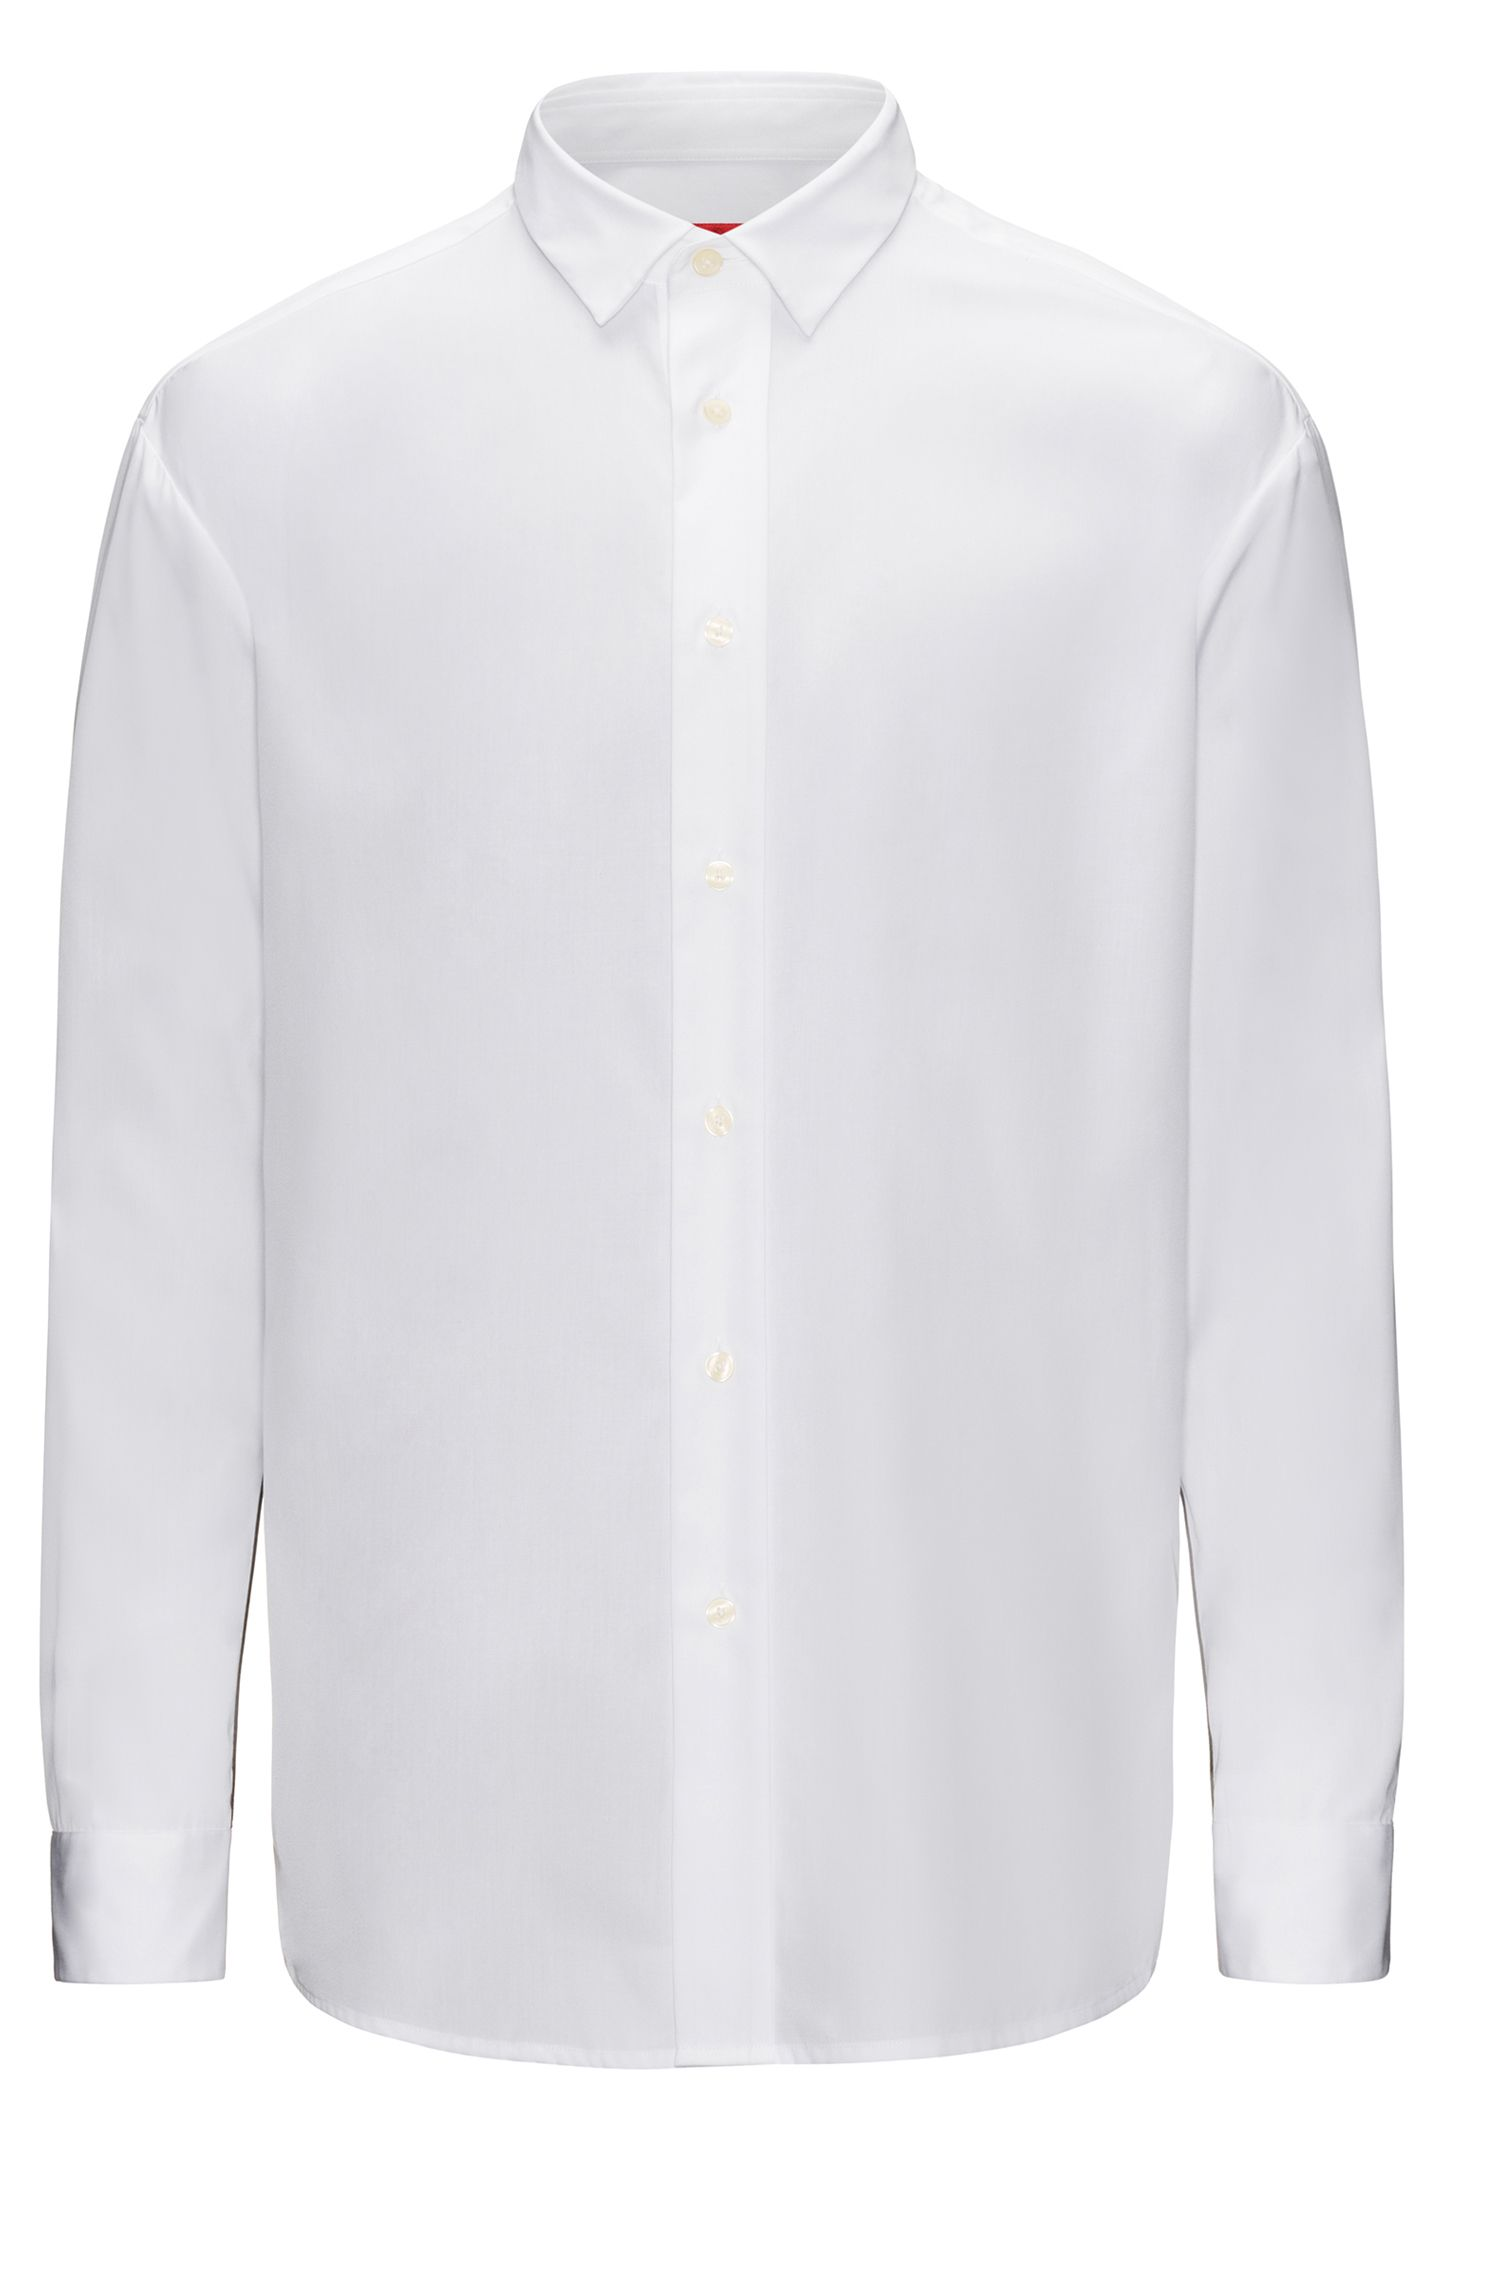 Relaxed-fit cotton shirt with contrast sleeve panels